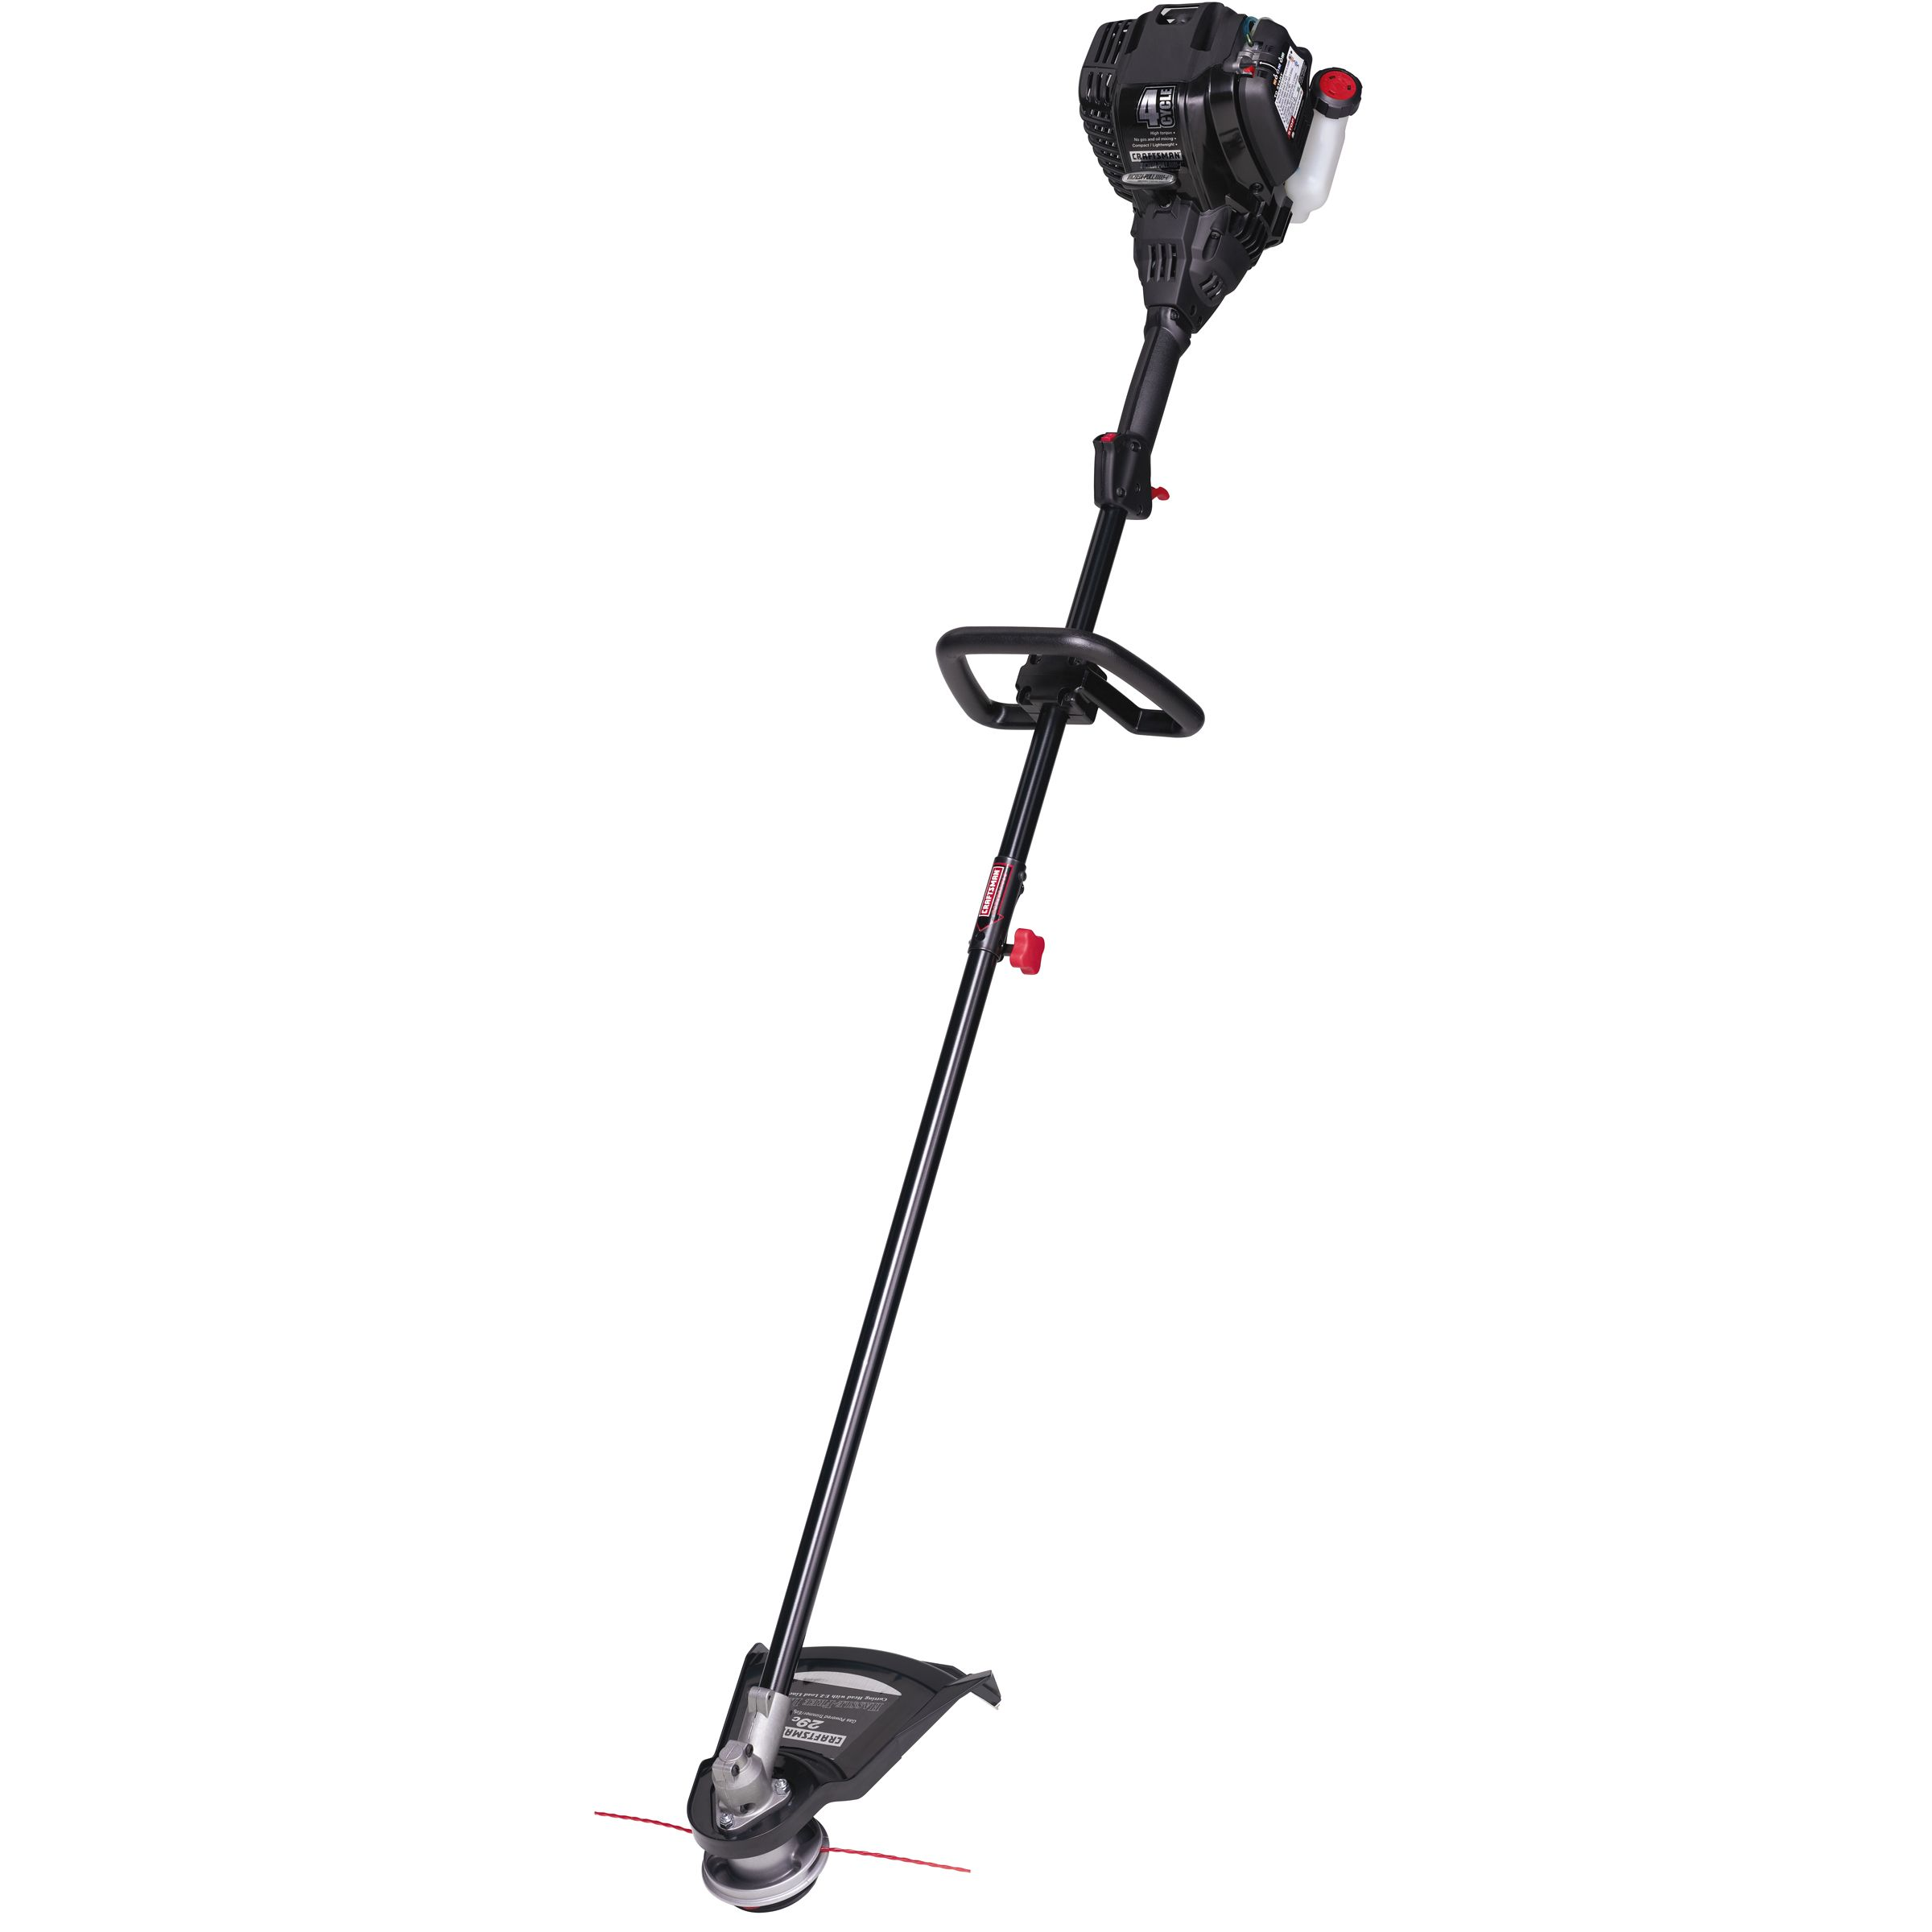 Craftsman Convertible 4-Cycle Straight Shaft Trimmer